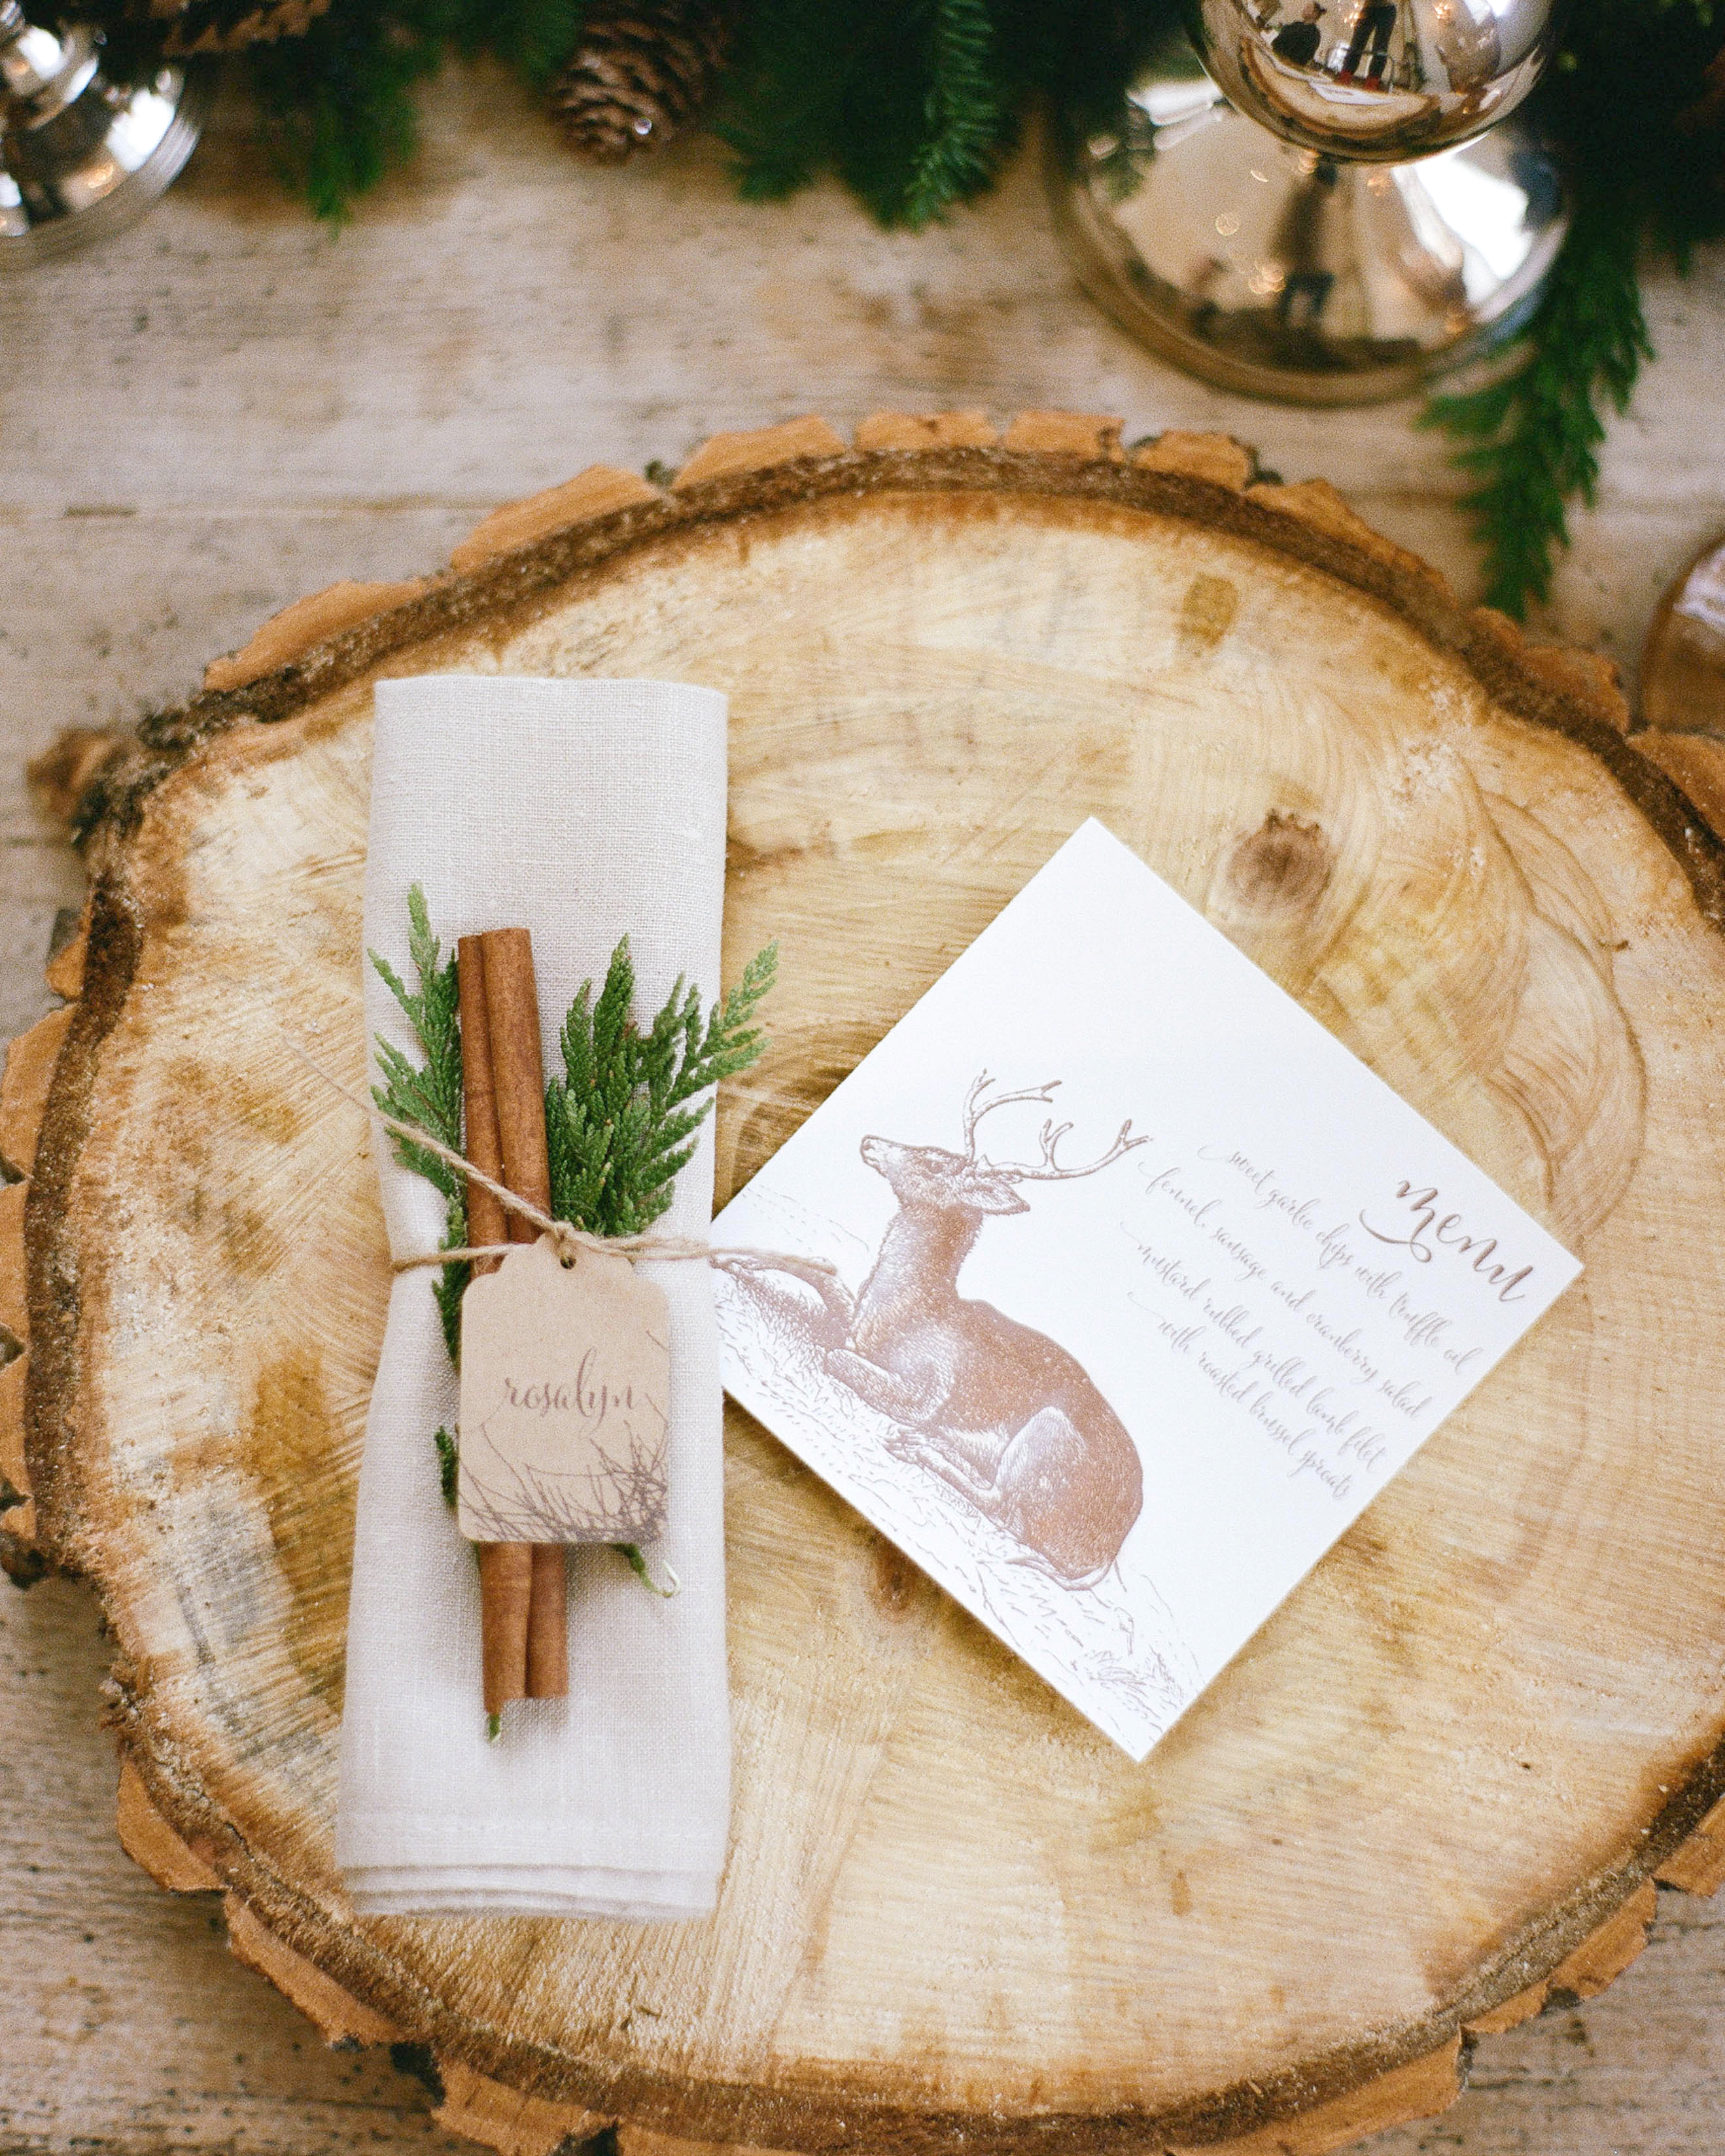 winter-bridal-shower-ideas-cinnamon-and-evergreen-place-and-menu-card-michelle-leo-events-1215.jpg